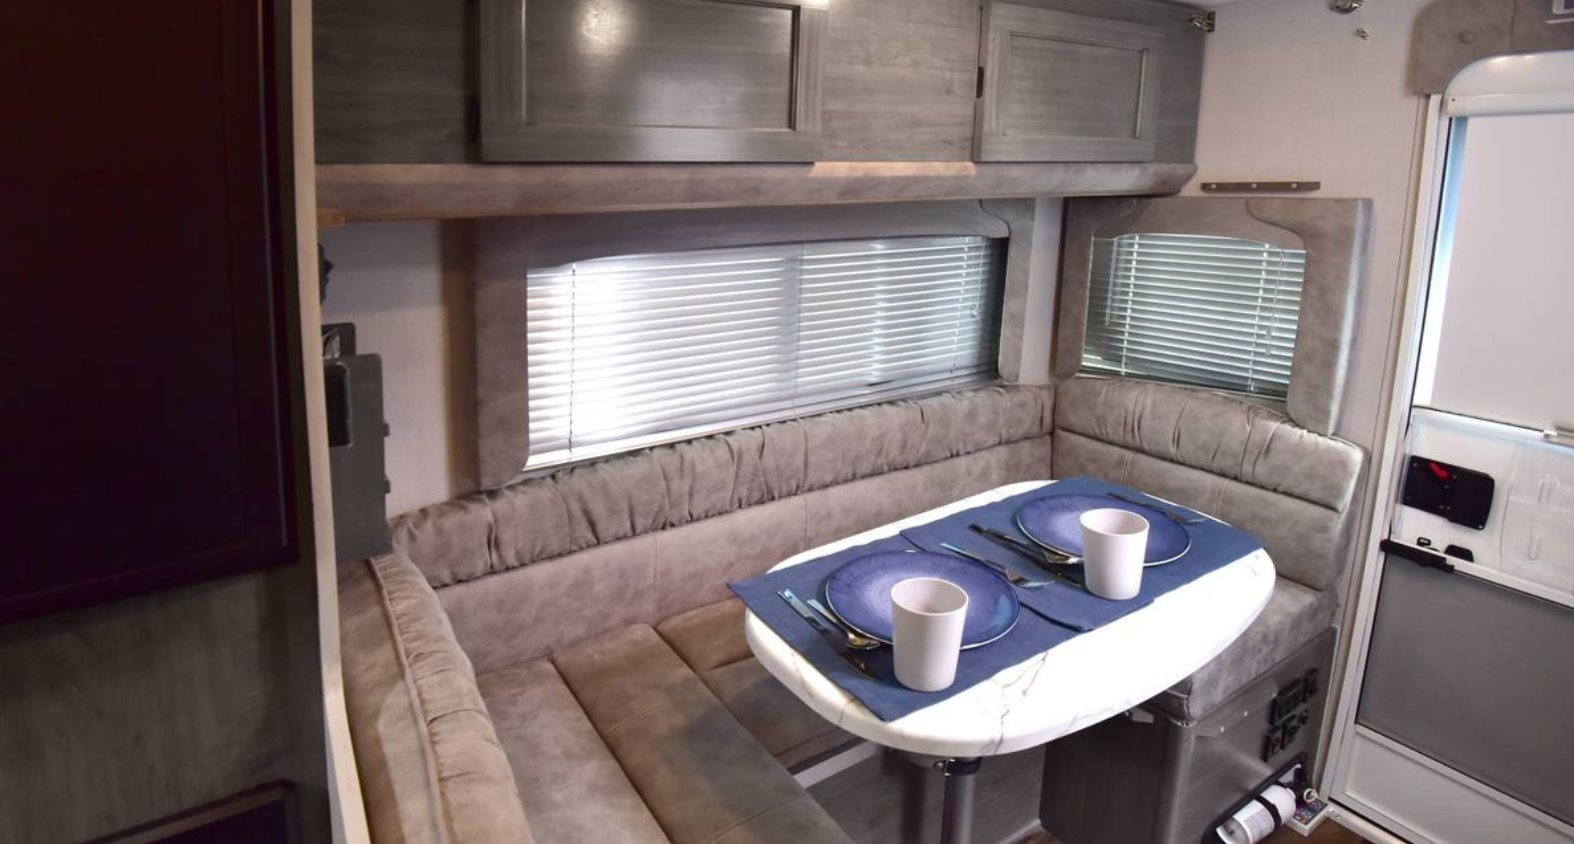 Pin by Lance Camper on Truck Campers in 2020 Truck